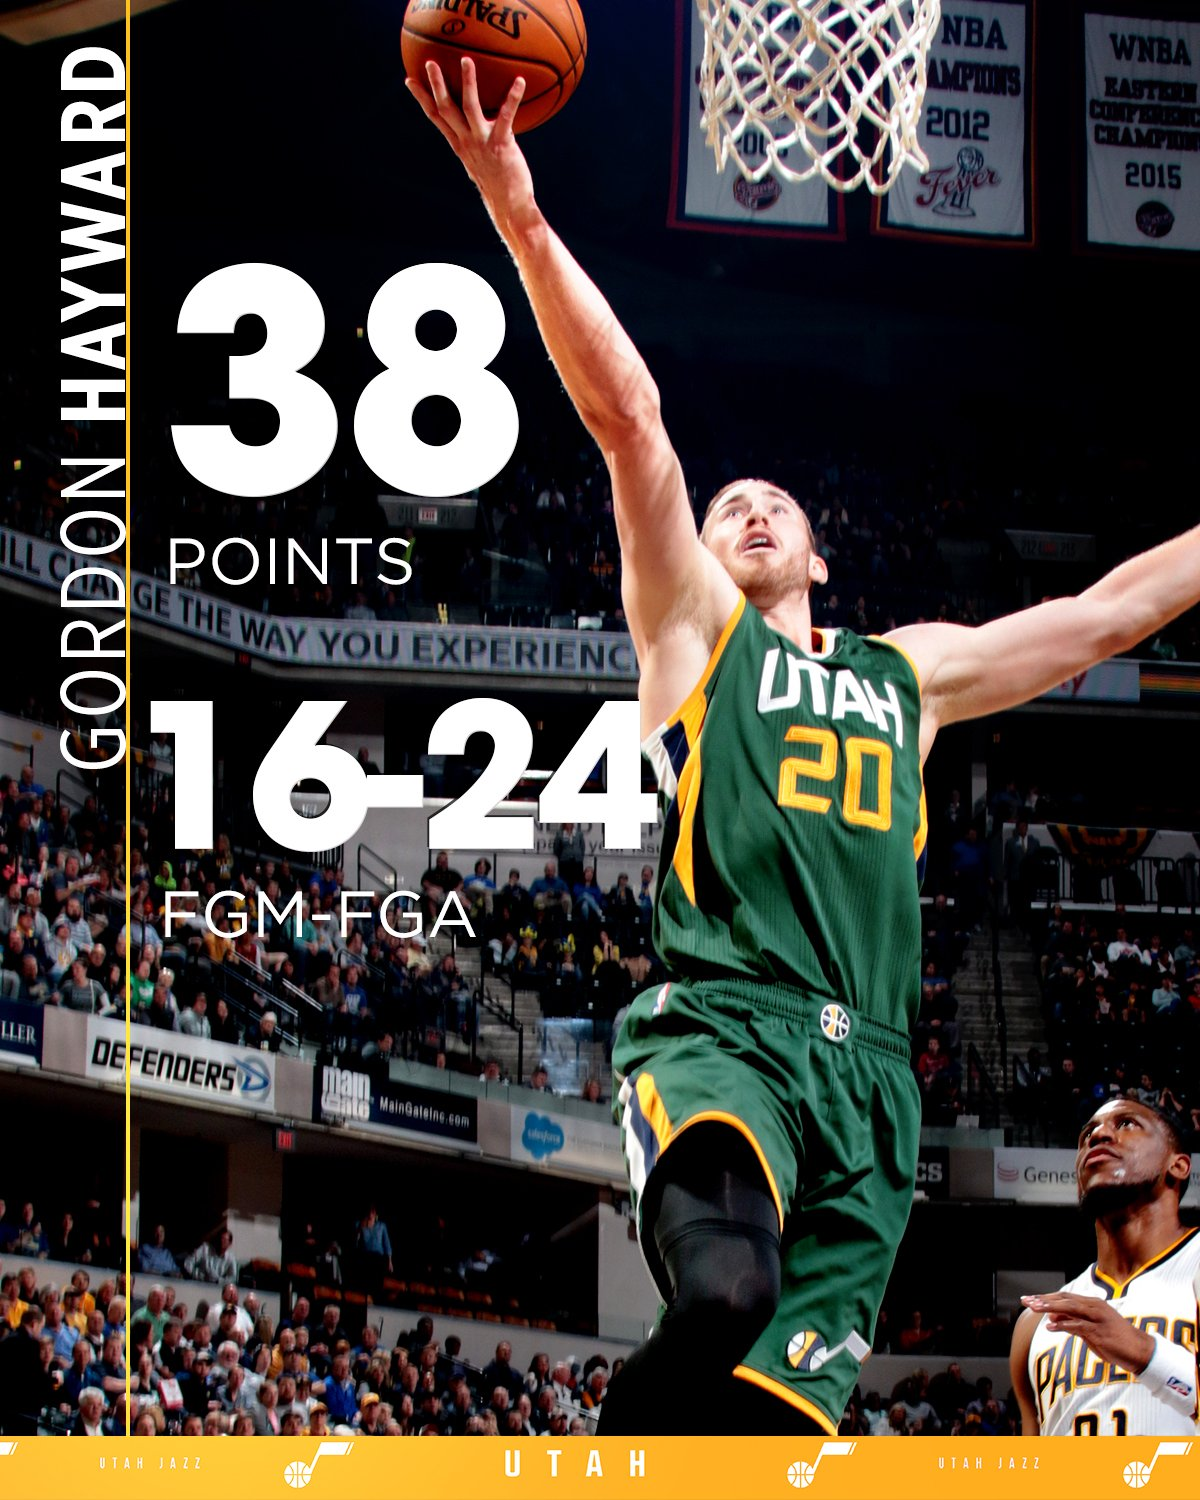 Those hometown rims are still friendly to Gordon Hayward.  38 pts = a new career-high https://t.co/UElUCaSEVt